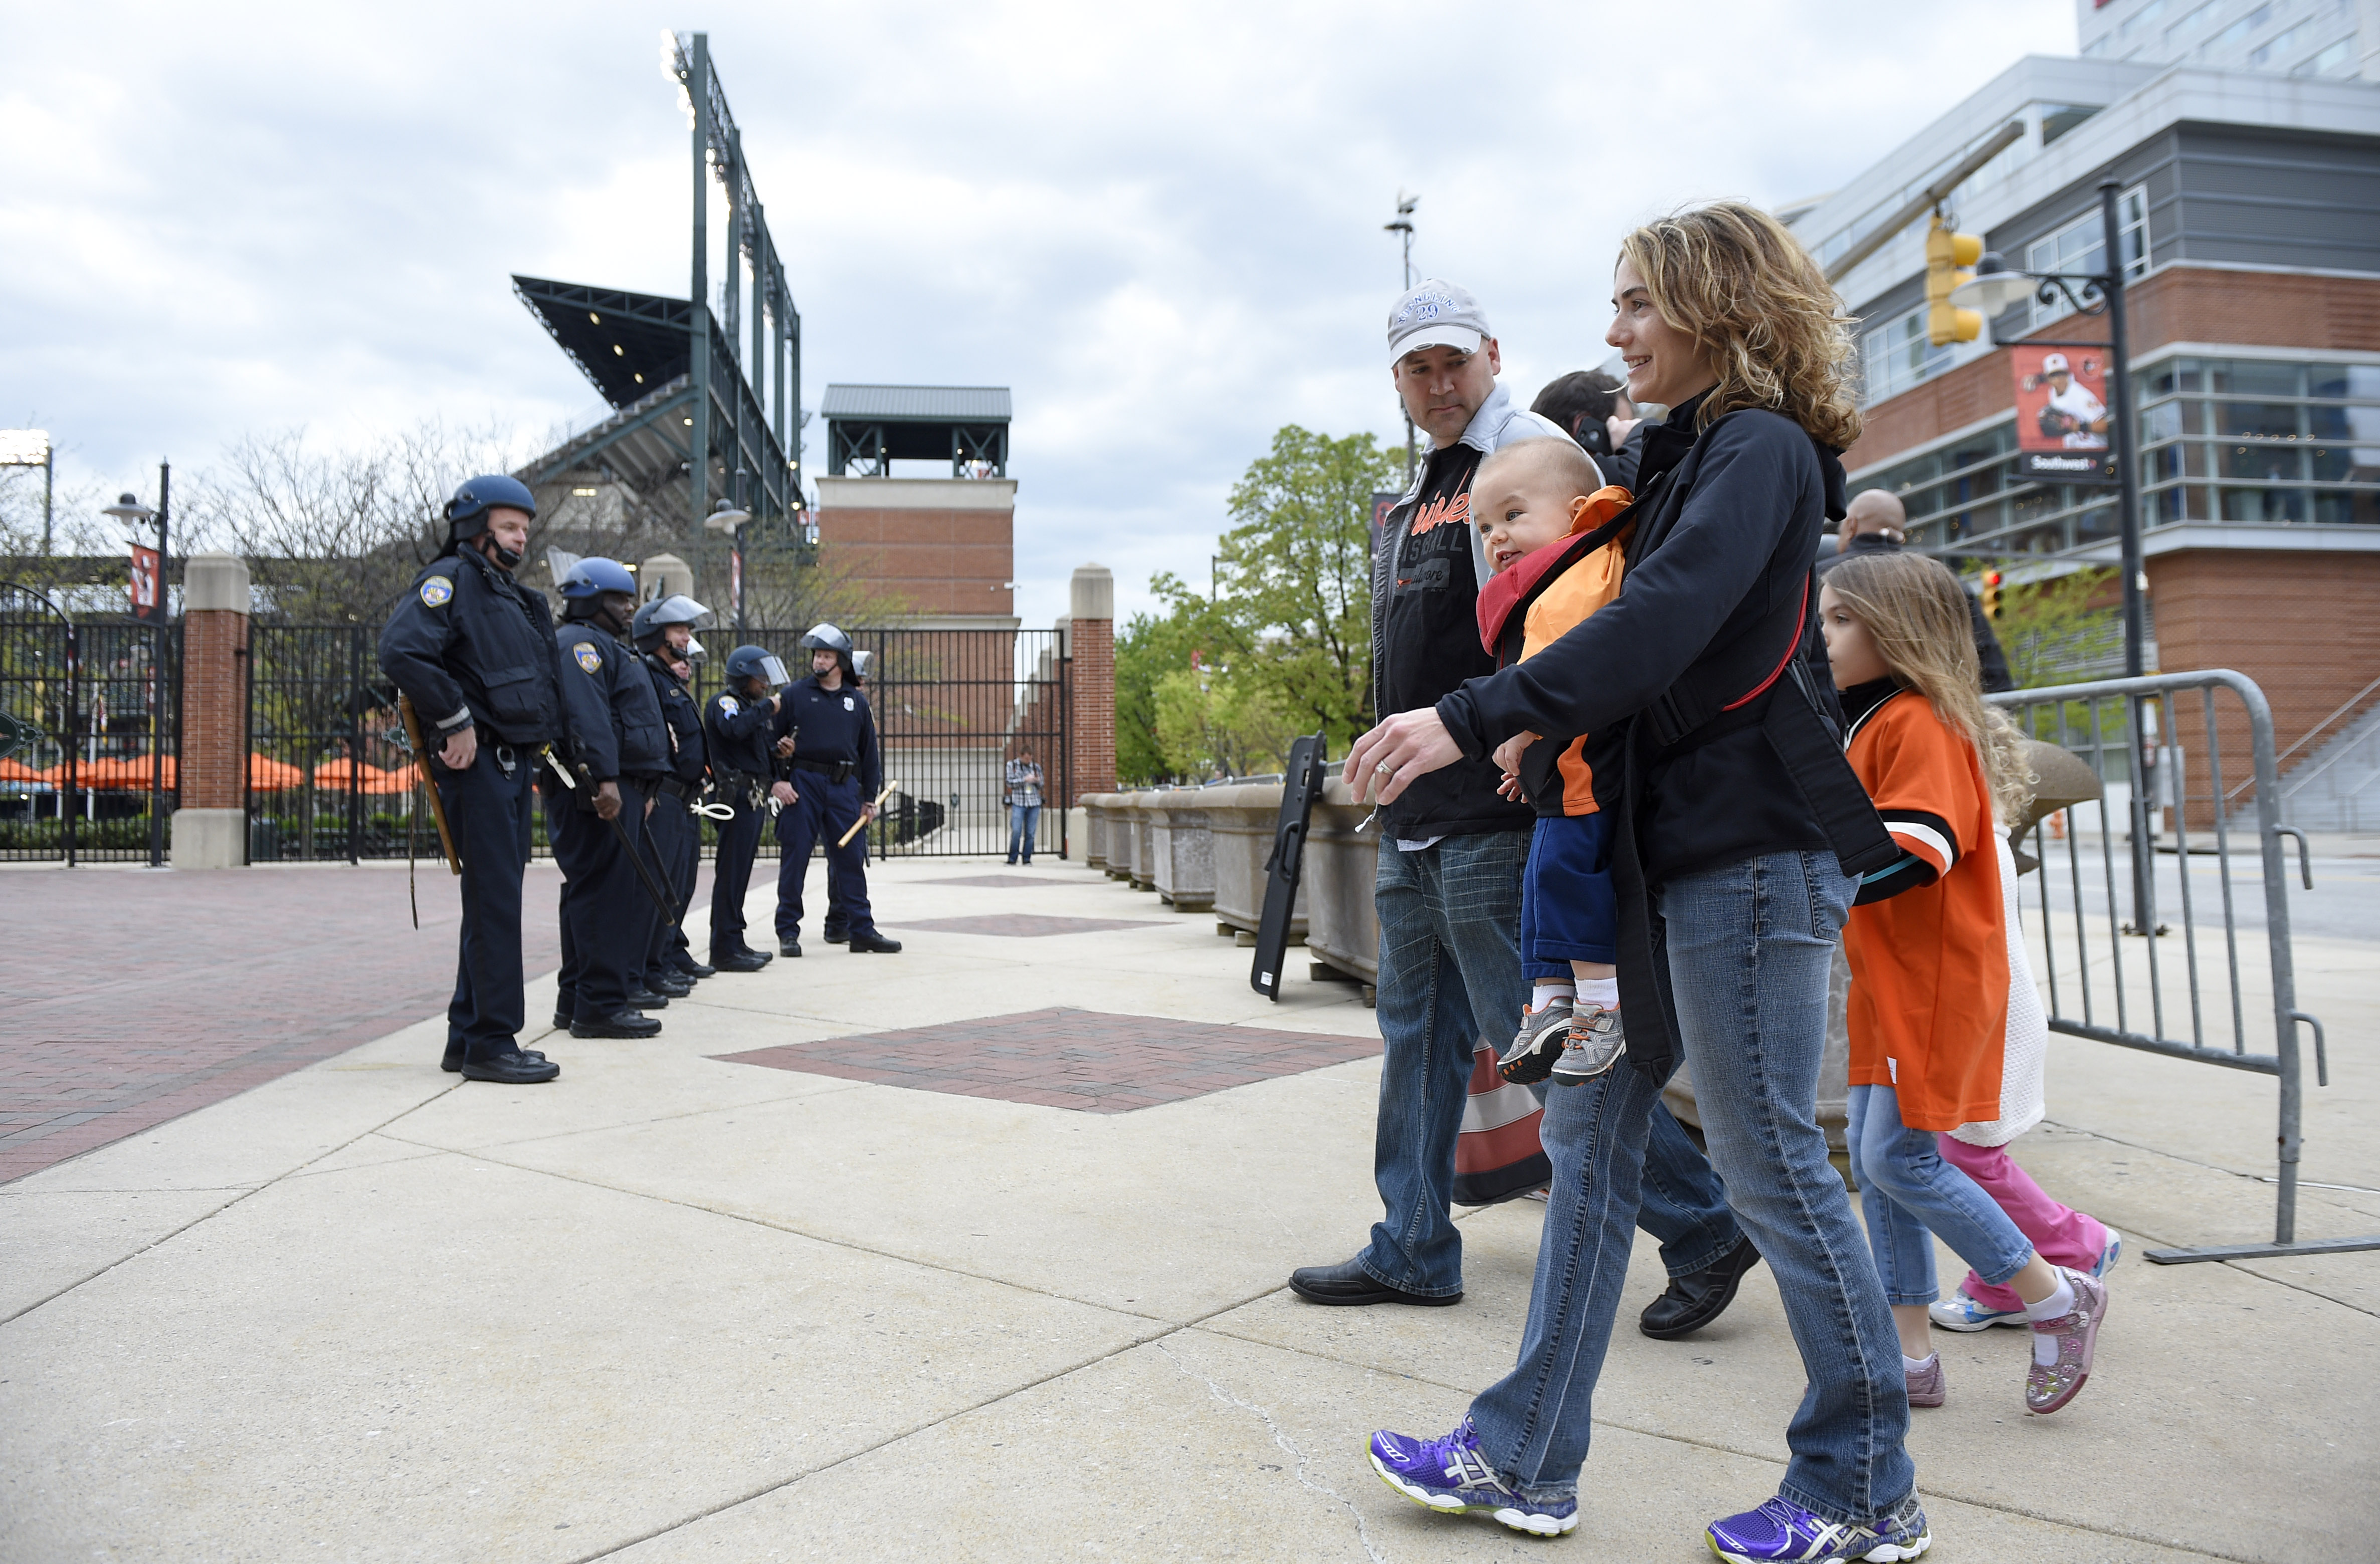 Baseball fans make their way towards Oriole Park at Camden Yards as Baltimore police stand watch, Monday, April 27, 2015, in Baltimore. The baseball game between the Baltimore Orioles and the Chicago White Sox is postponed. (AP Photo/Nick Wass)